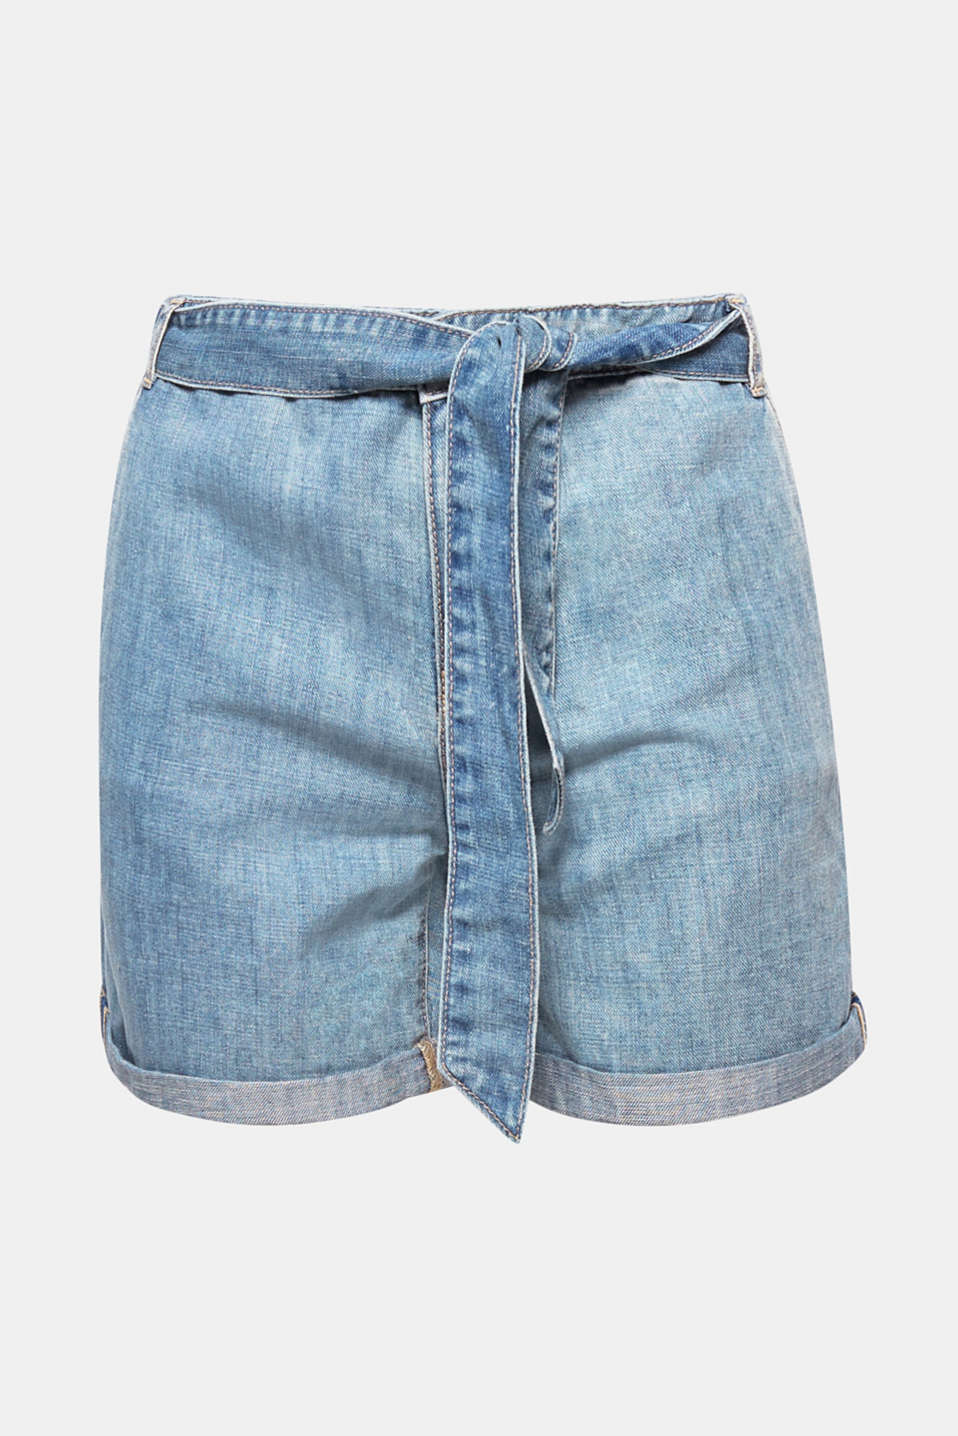 Keeping your look relaxed is easy in these denim shorts made of airy blended cotton and linen in a casual fit with a tie-around belt!